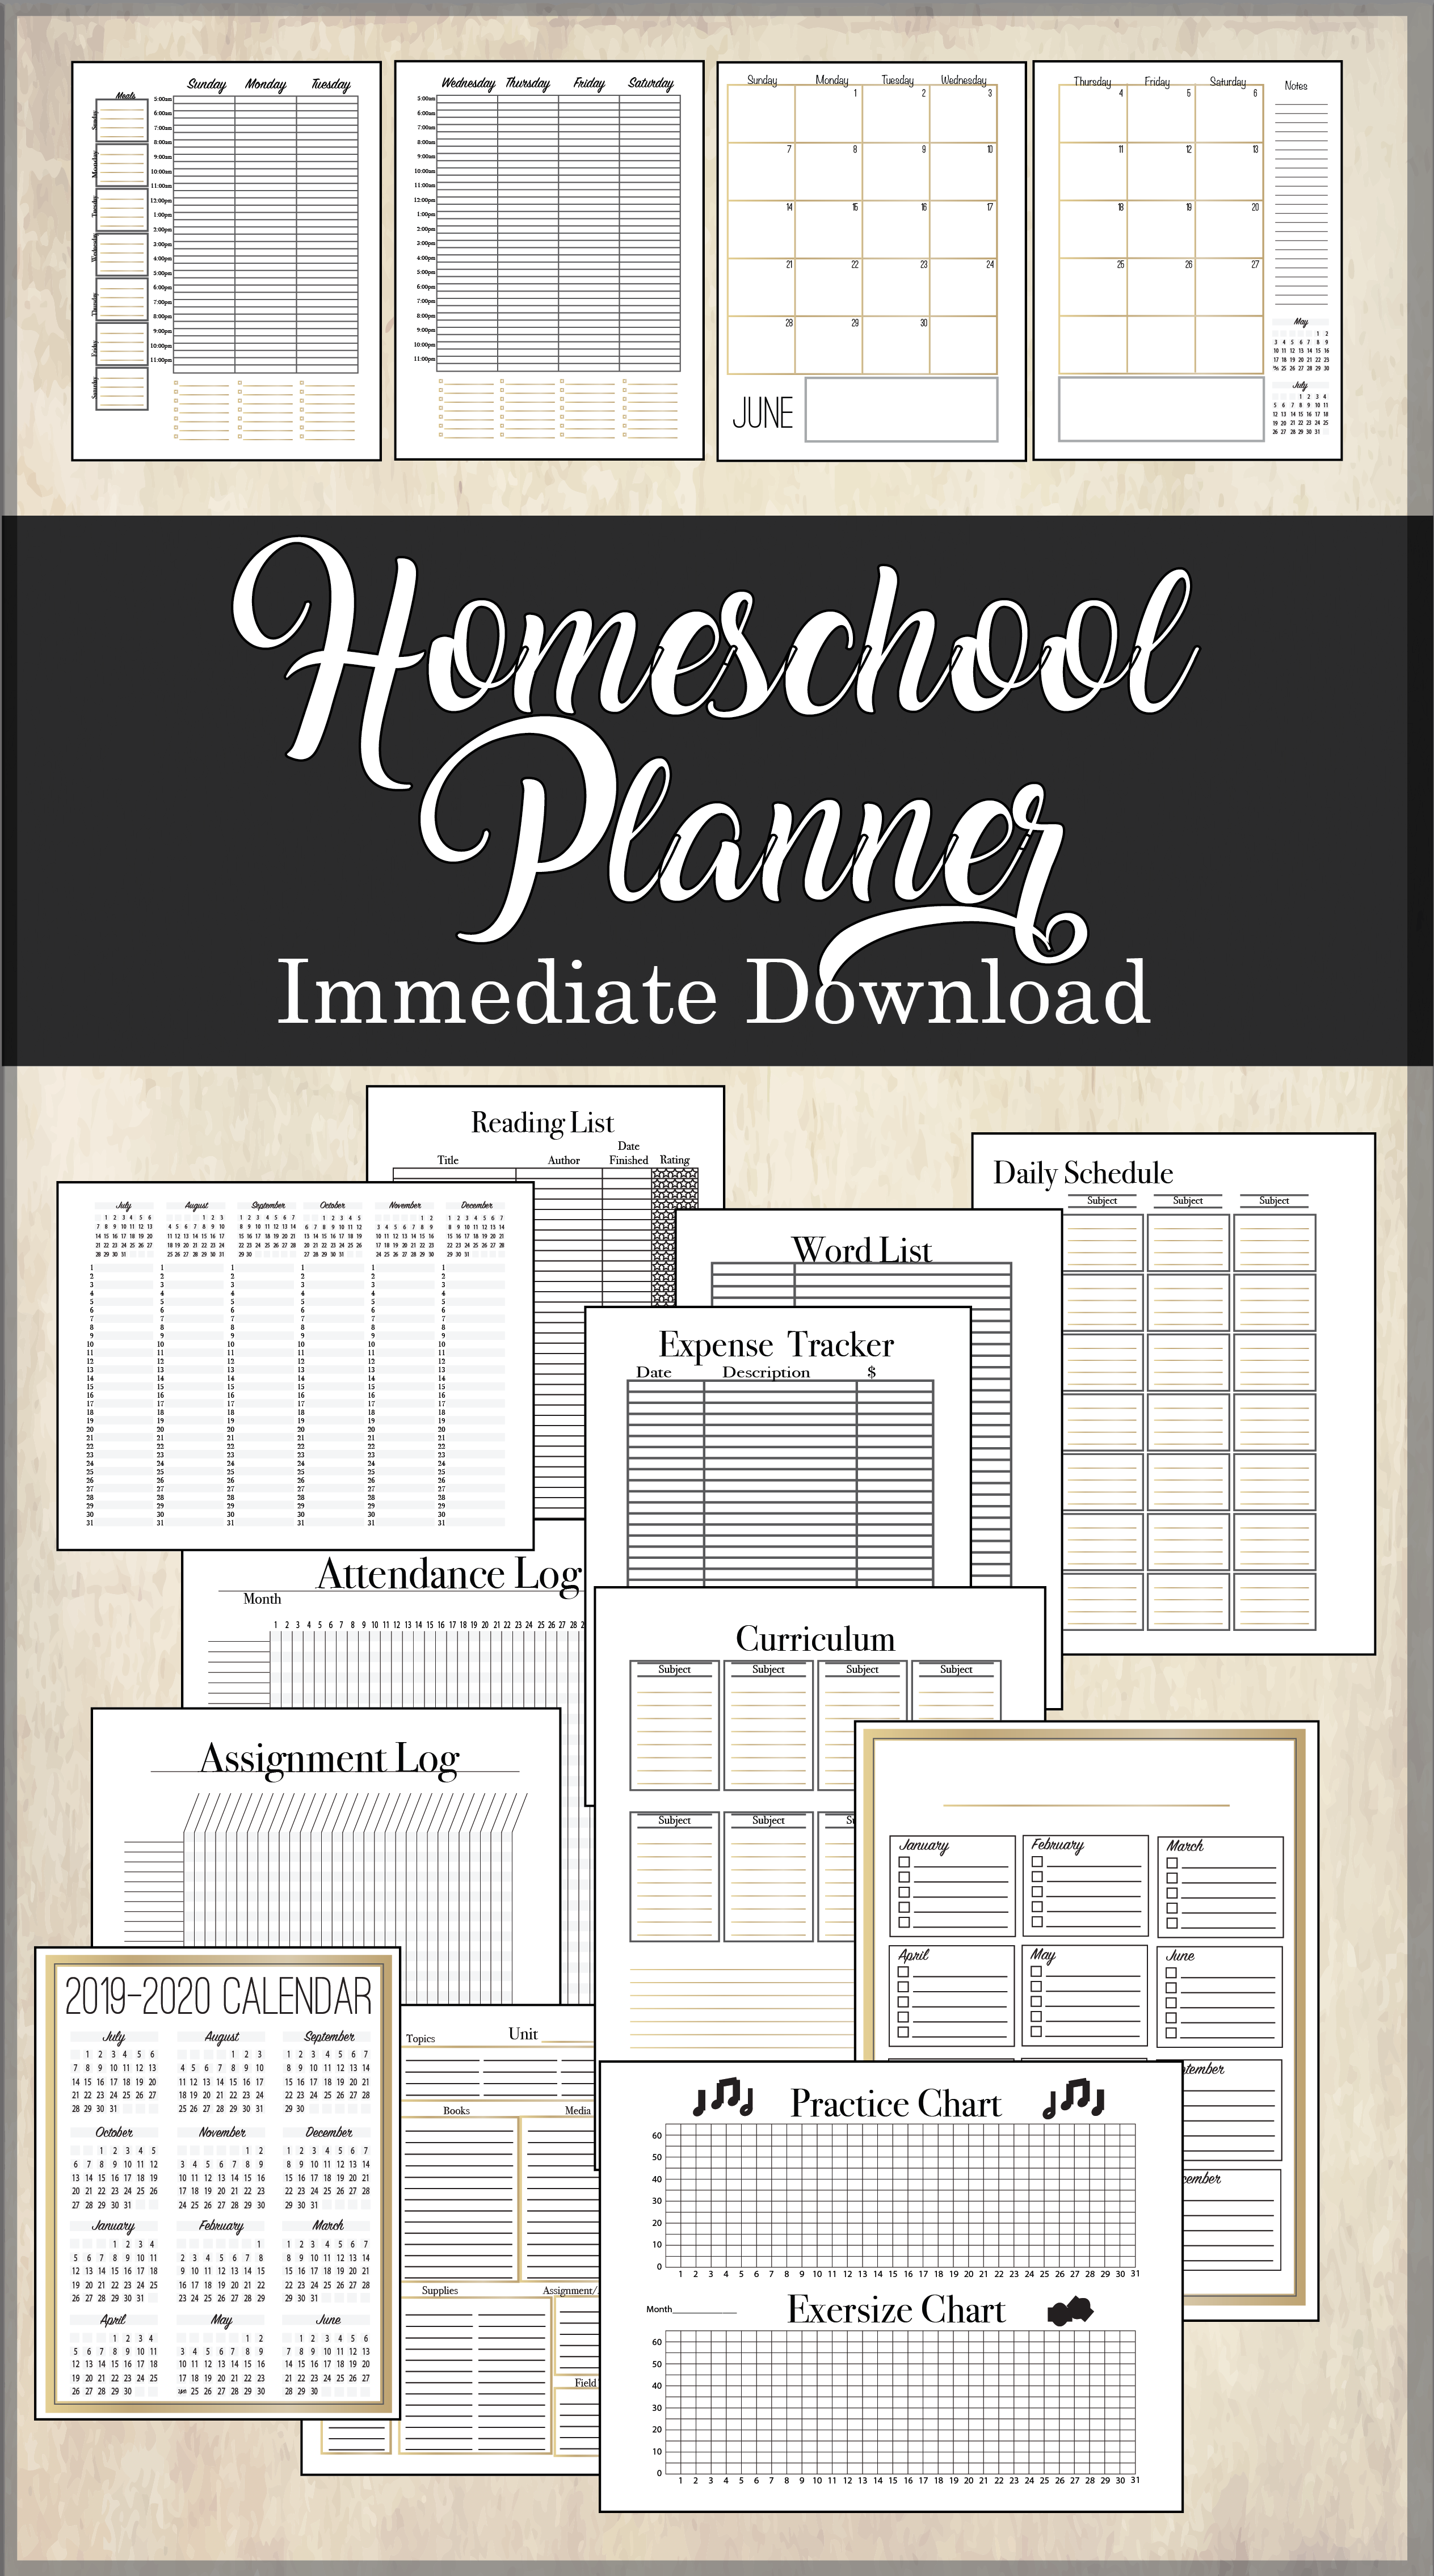 Homeschool Planner Immediate Download